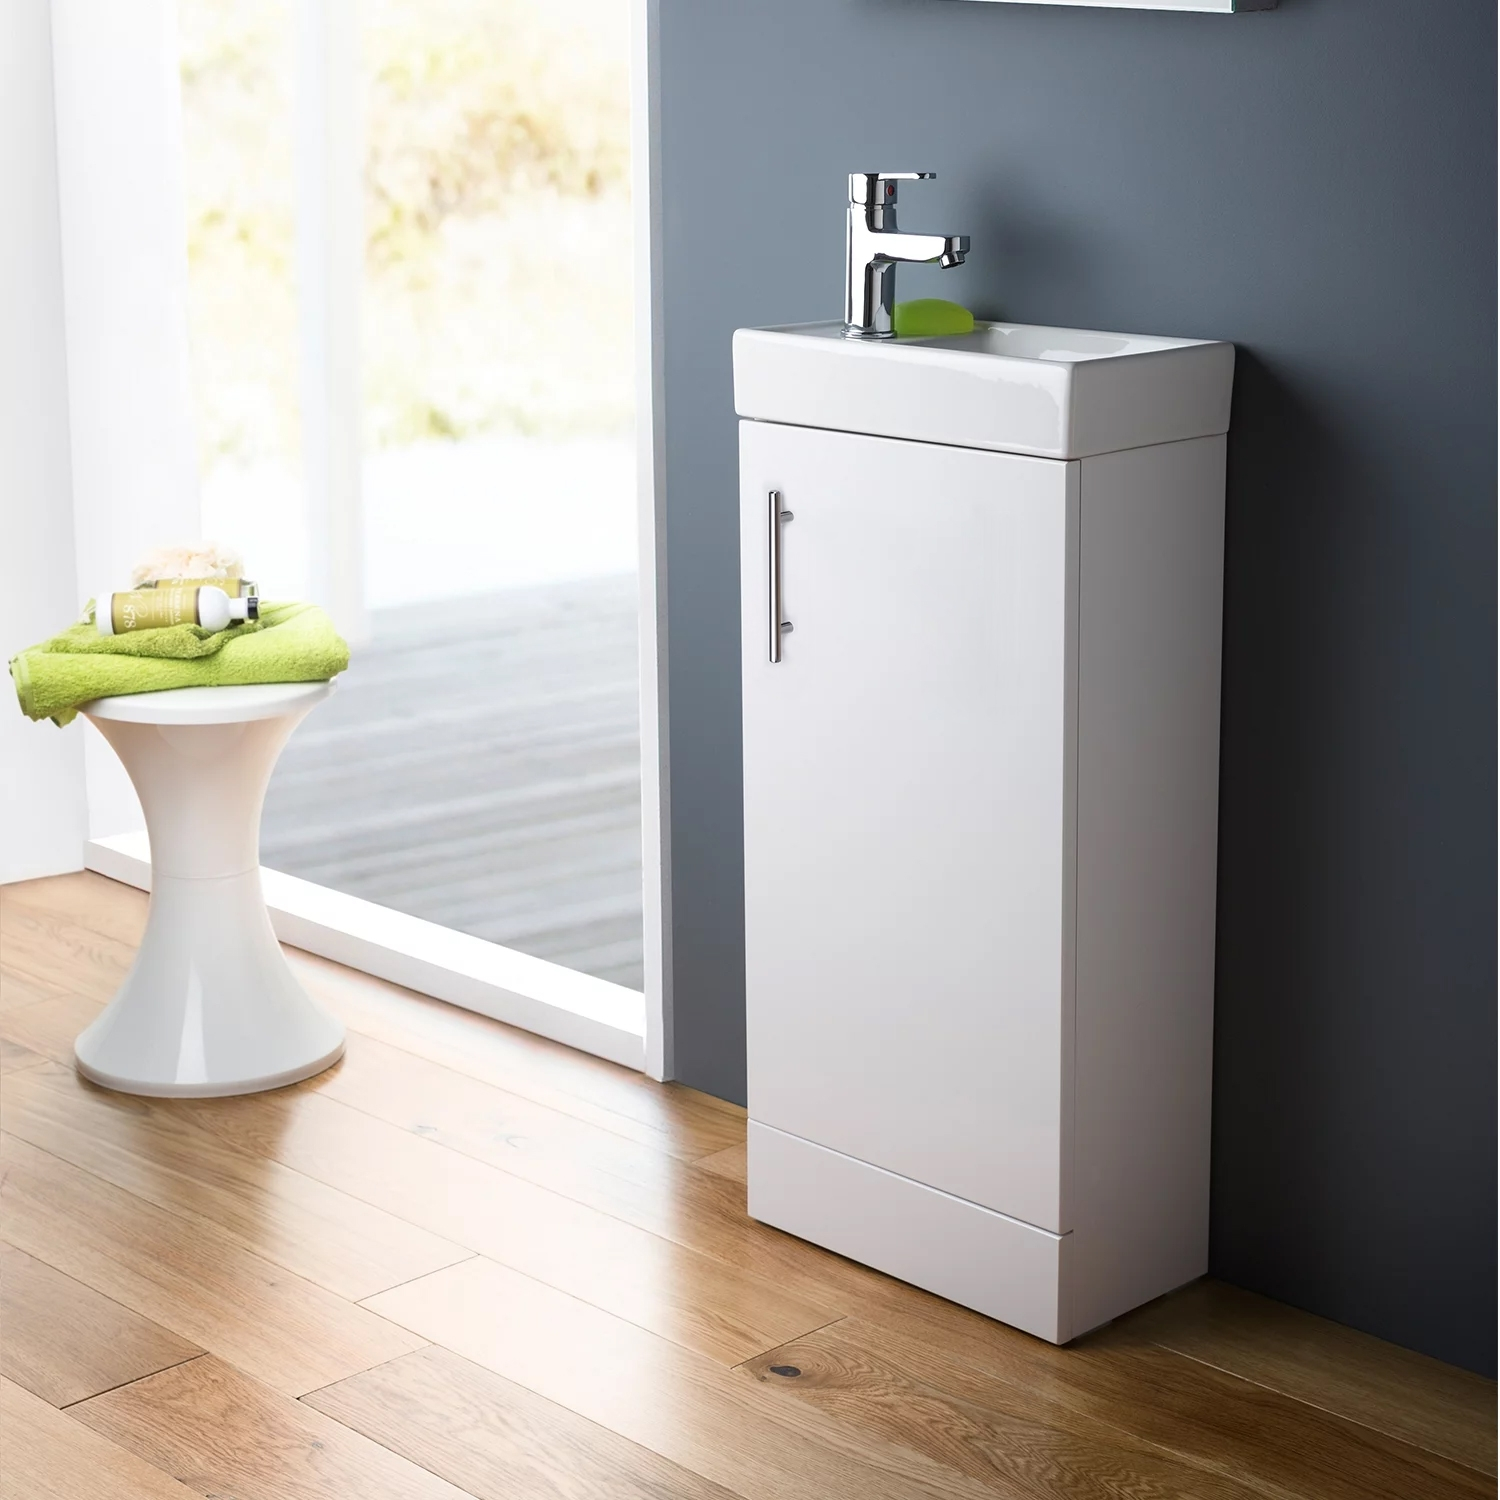 Premier Minimalist Compact Floor Standing Vanity Unit with Basin - 500mm Wide - Gloss White